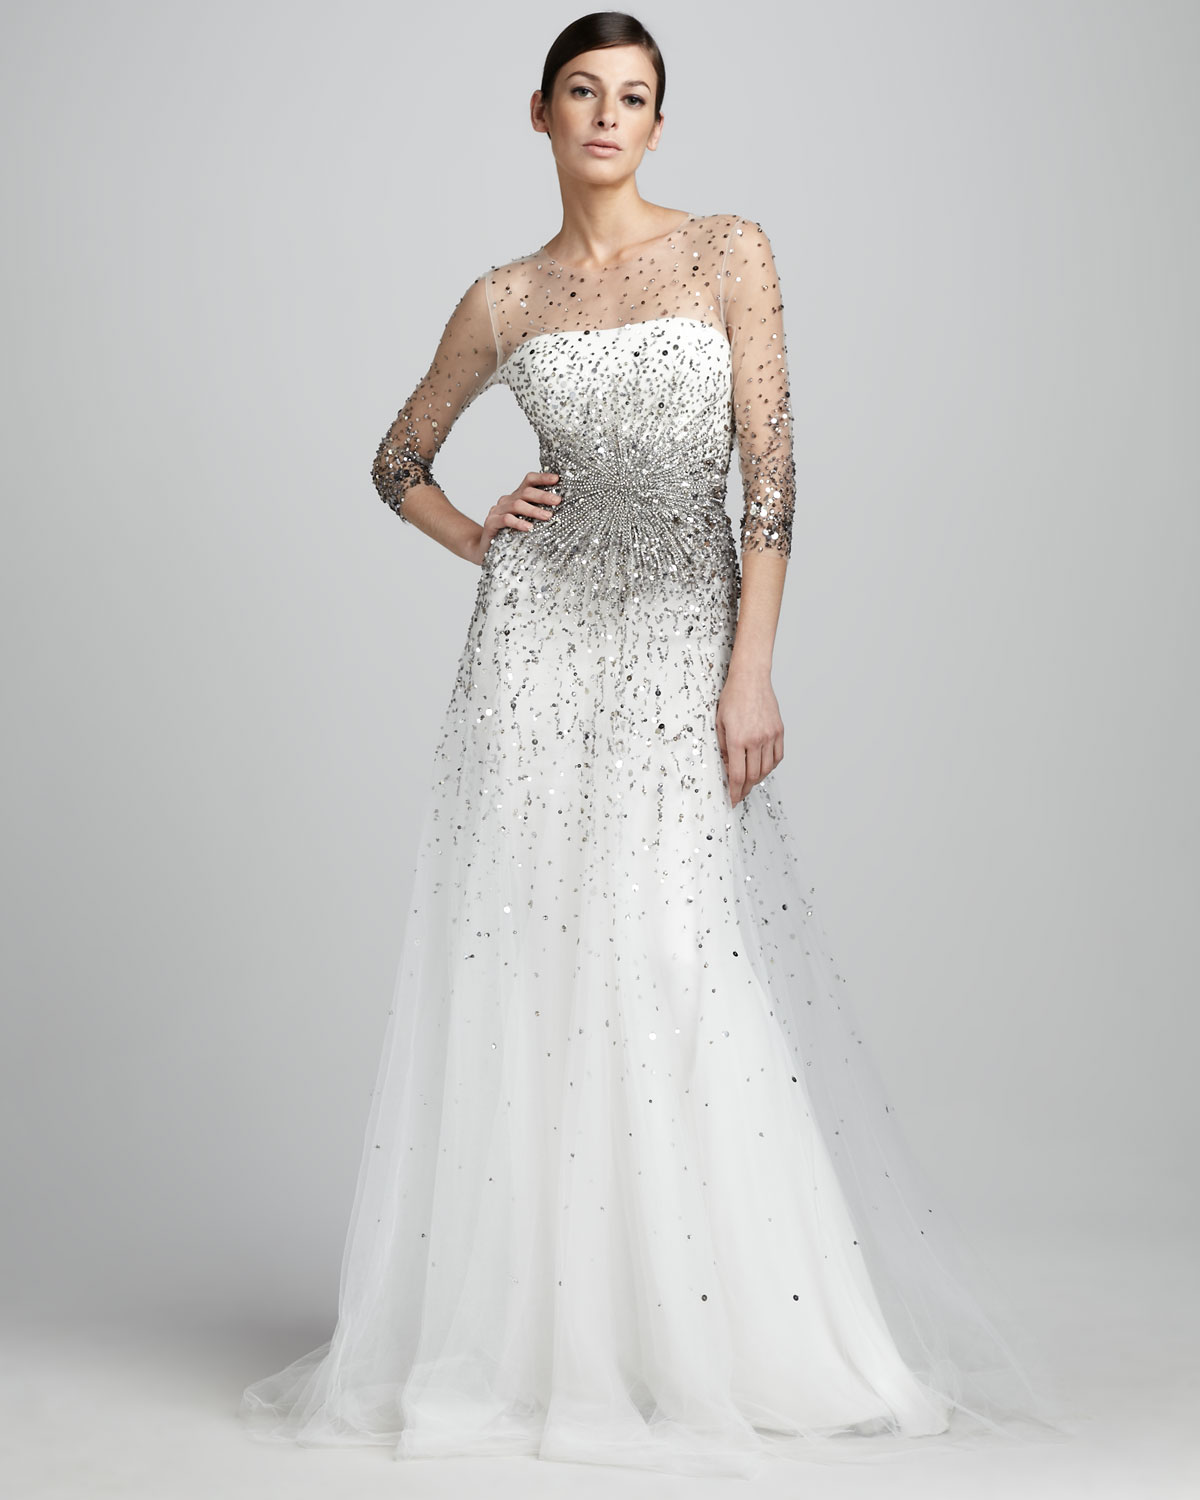 Wedding Dresses For Over 50 Uk: Marchesa Sequined Illusion Gown In White